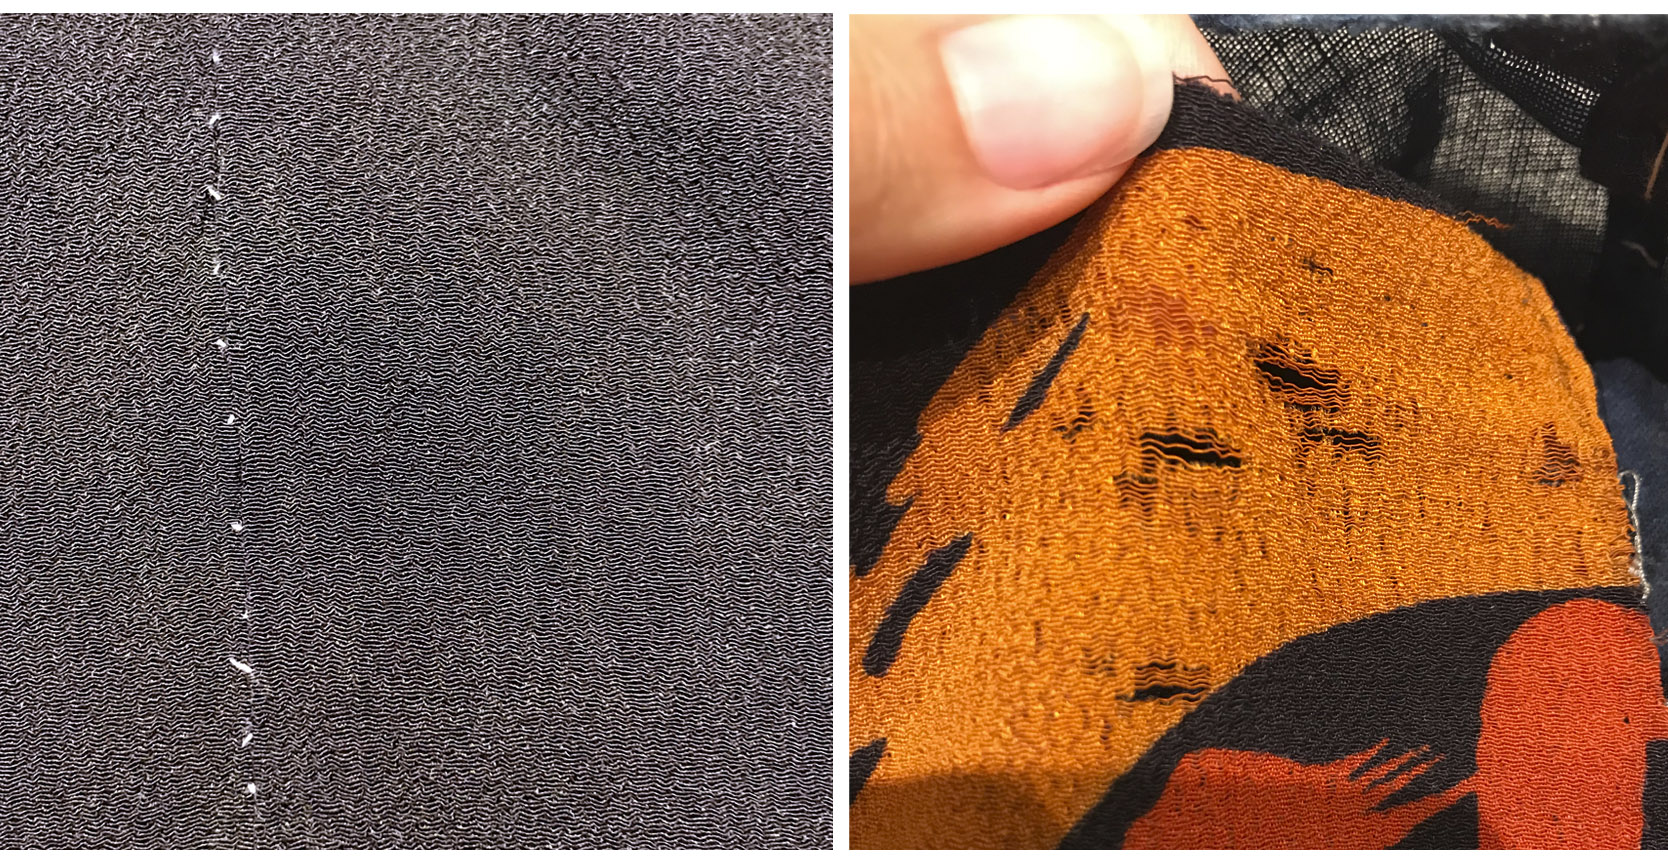 Problem areas: light gray stitched showing in some of the seams; fabric going threadbare in a few places. (Also, click to see a larger image if you don't know what chirimen fabric looks like)